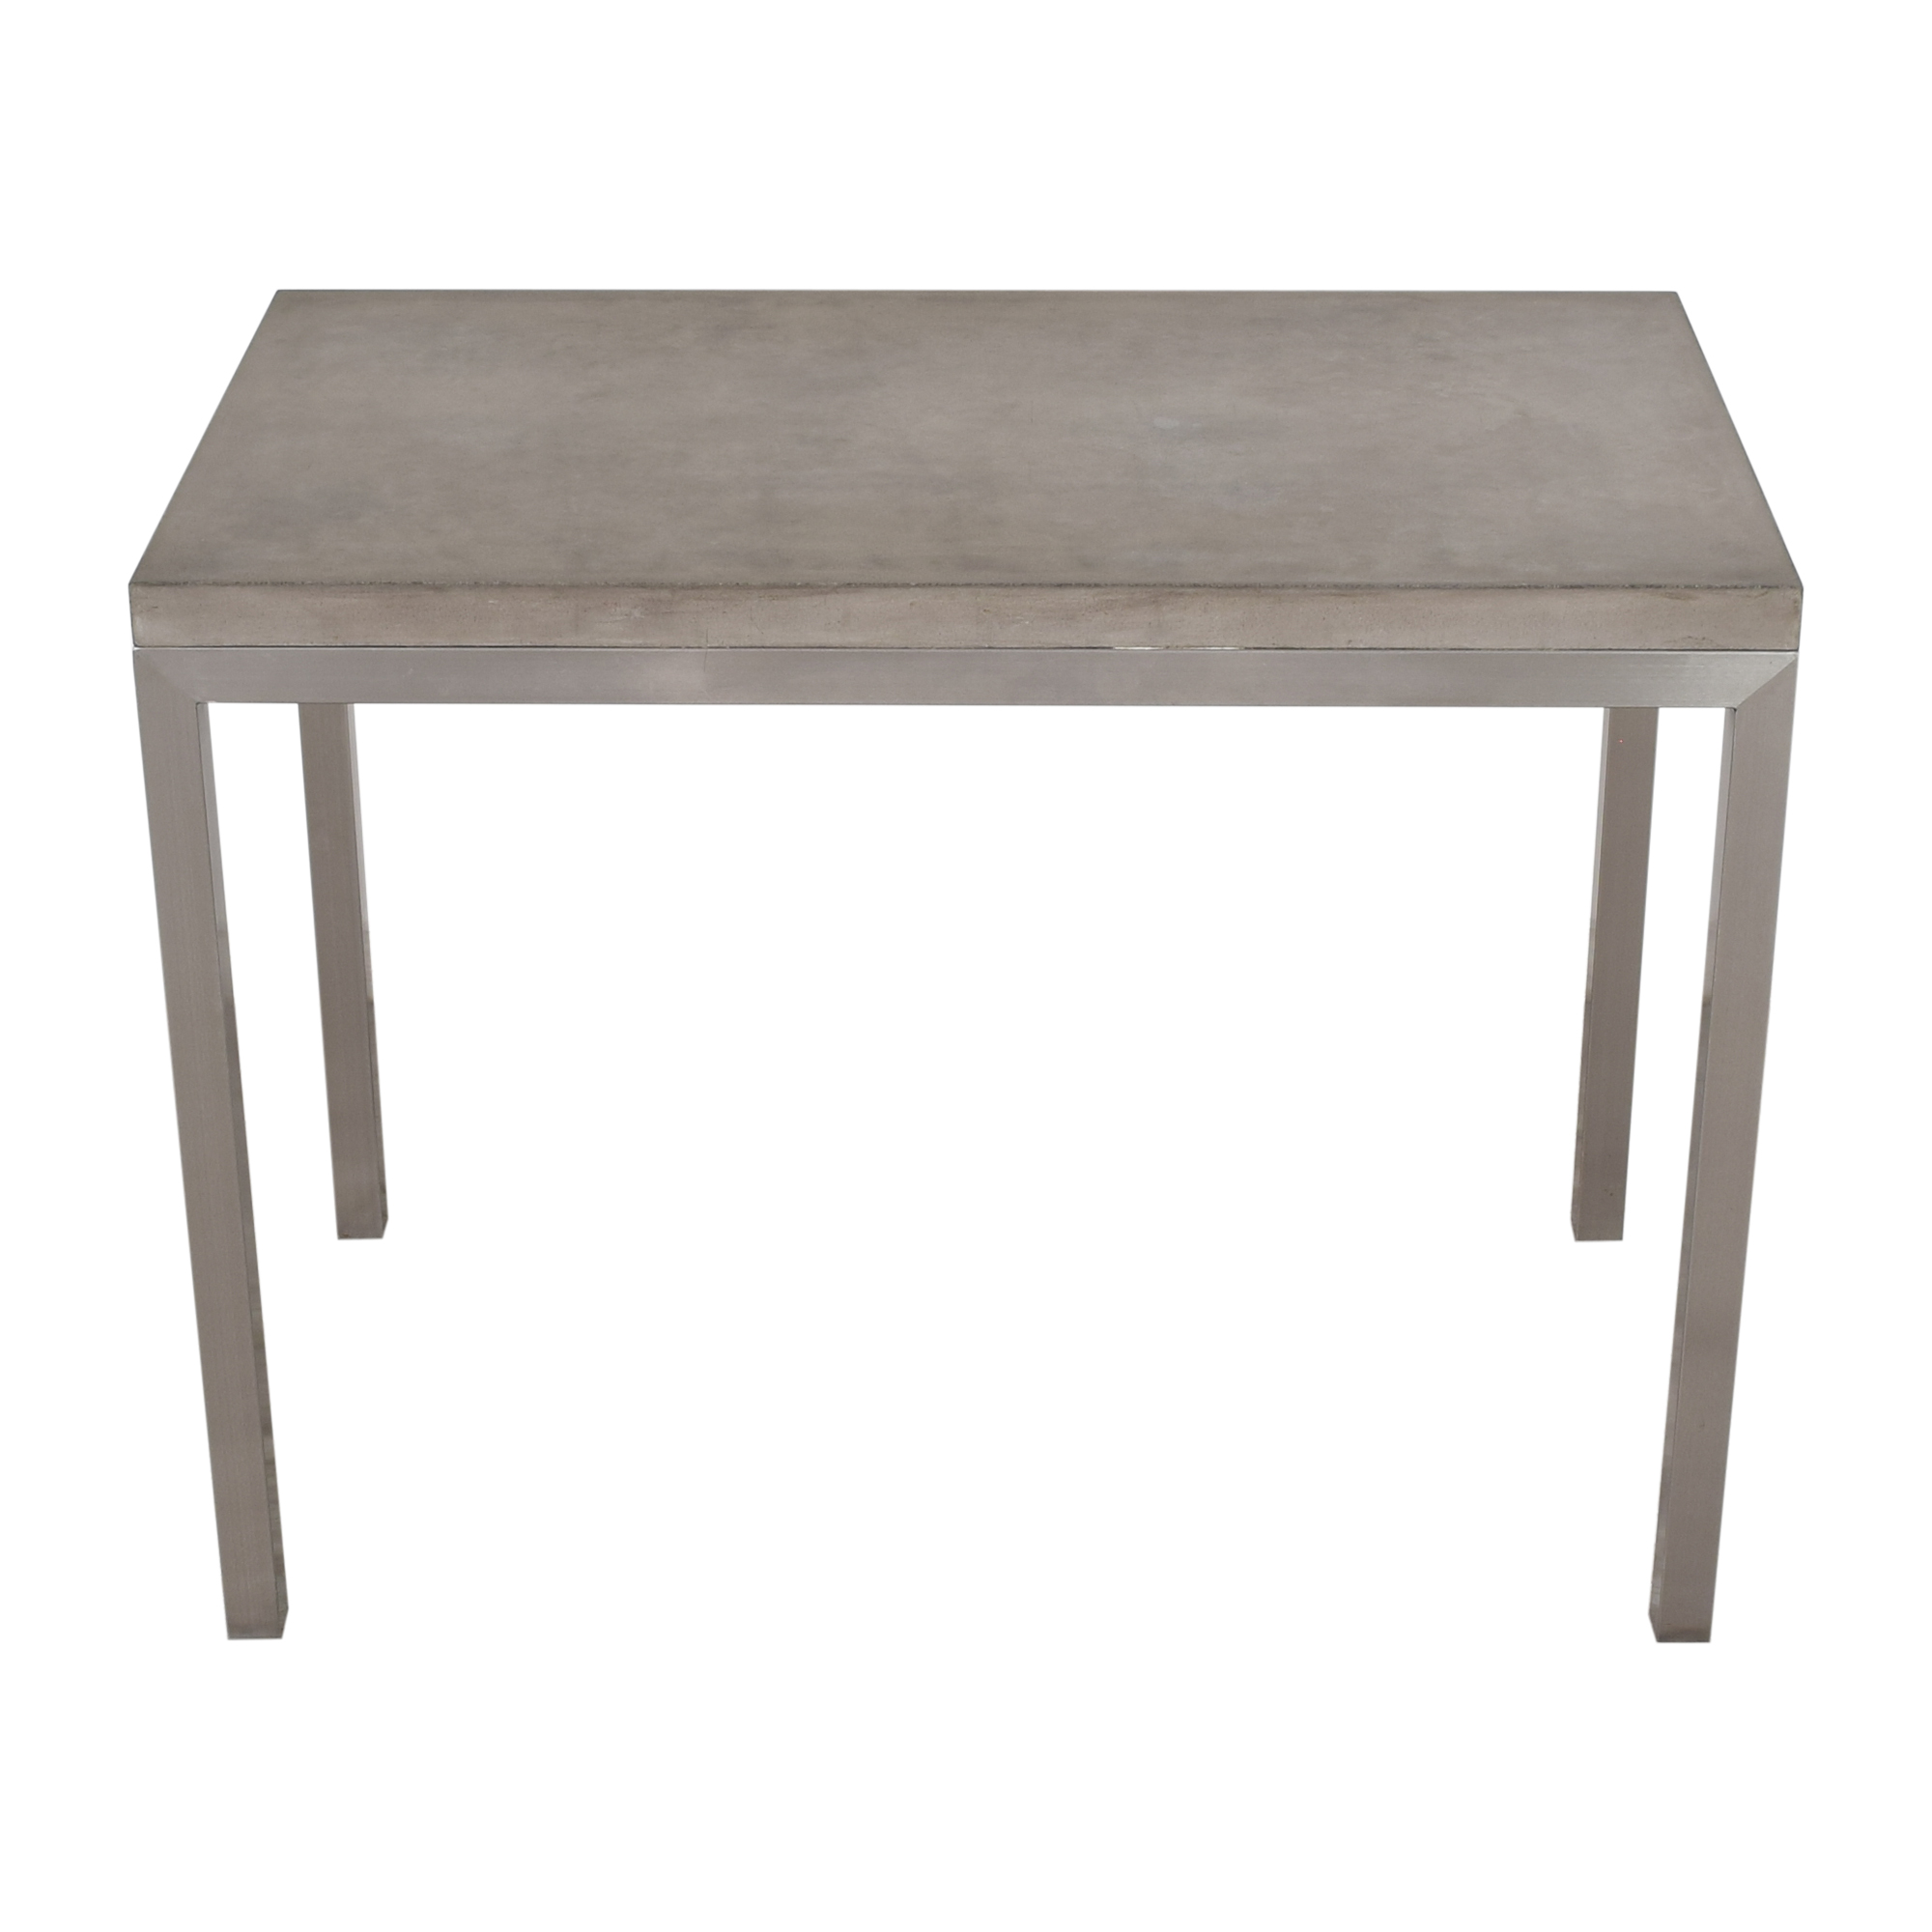 Crate & Barrel Crate & Barrel Parsons High Dining Table silver & grey